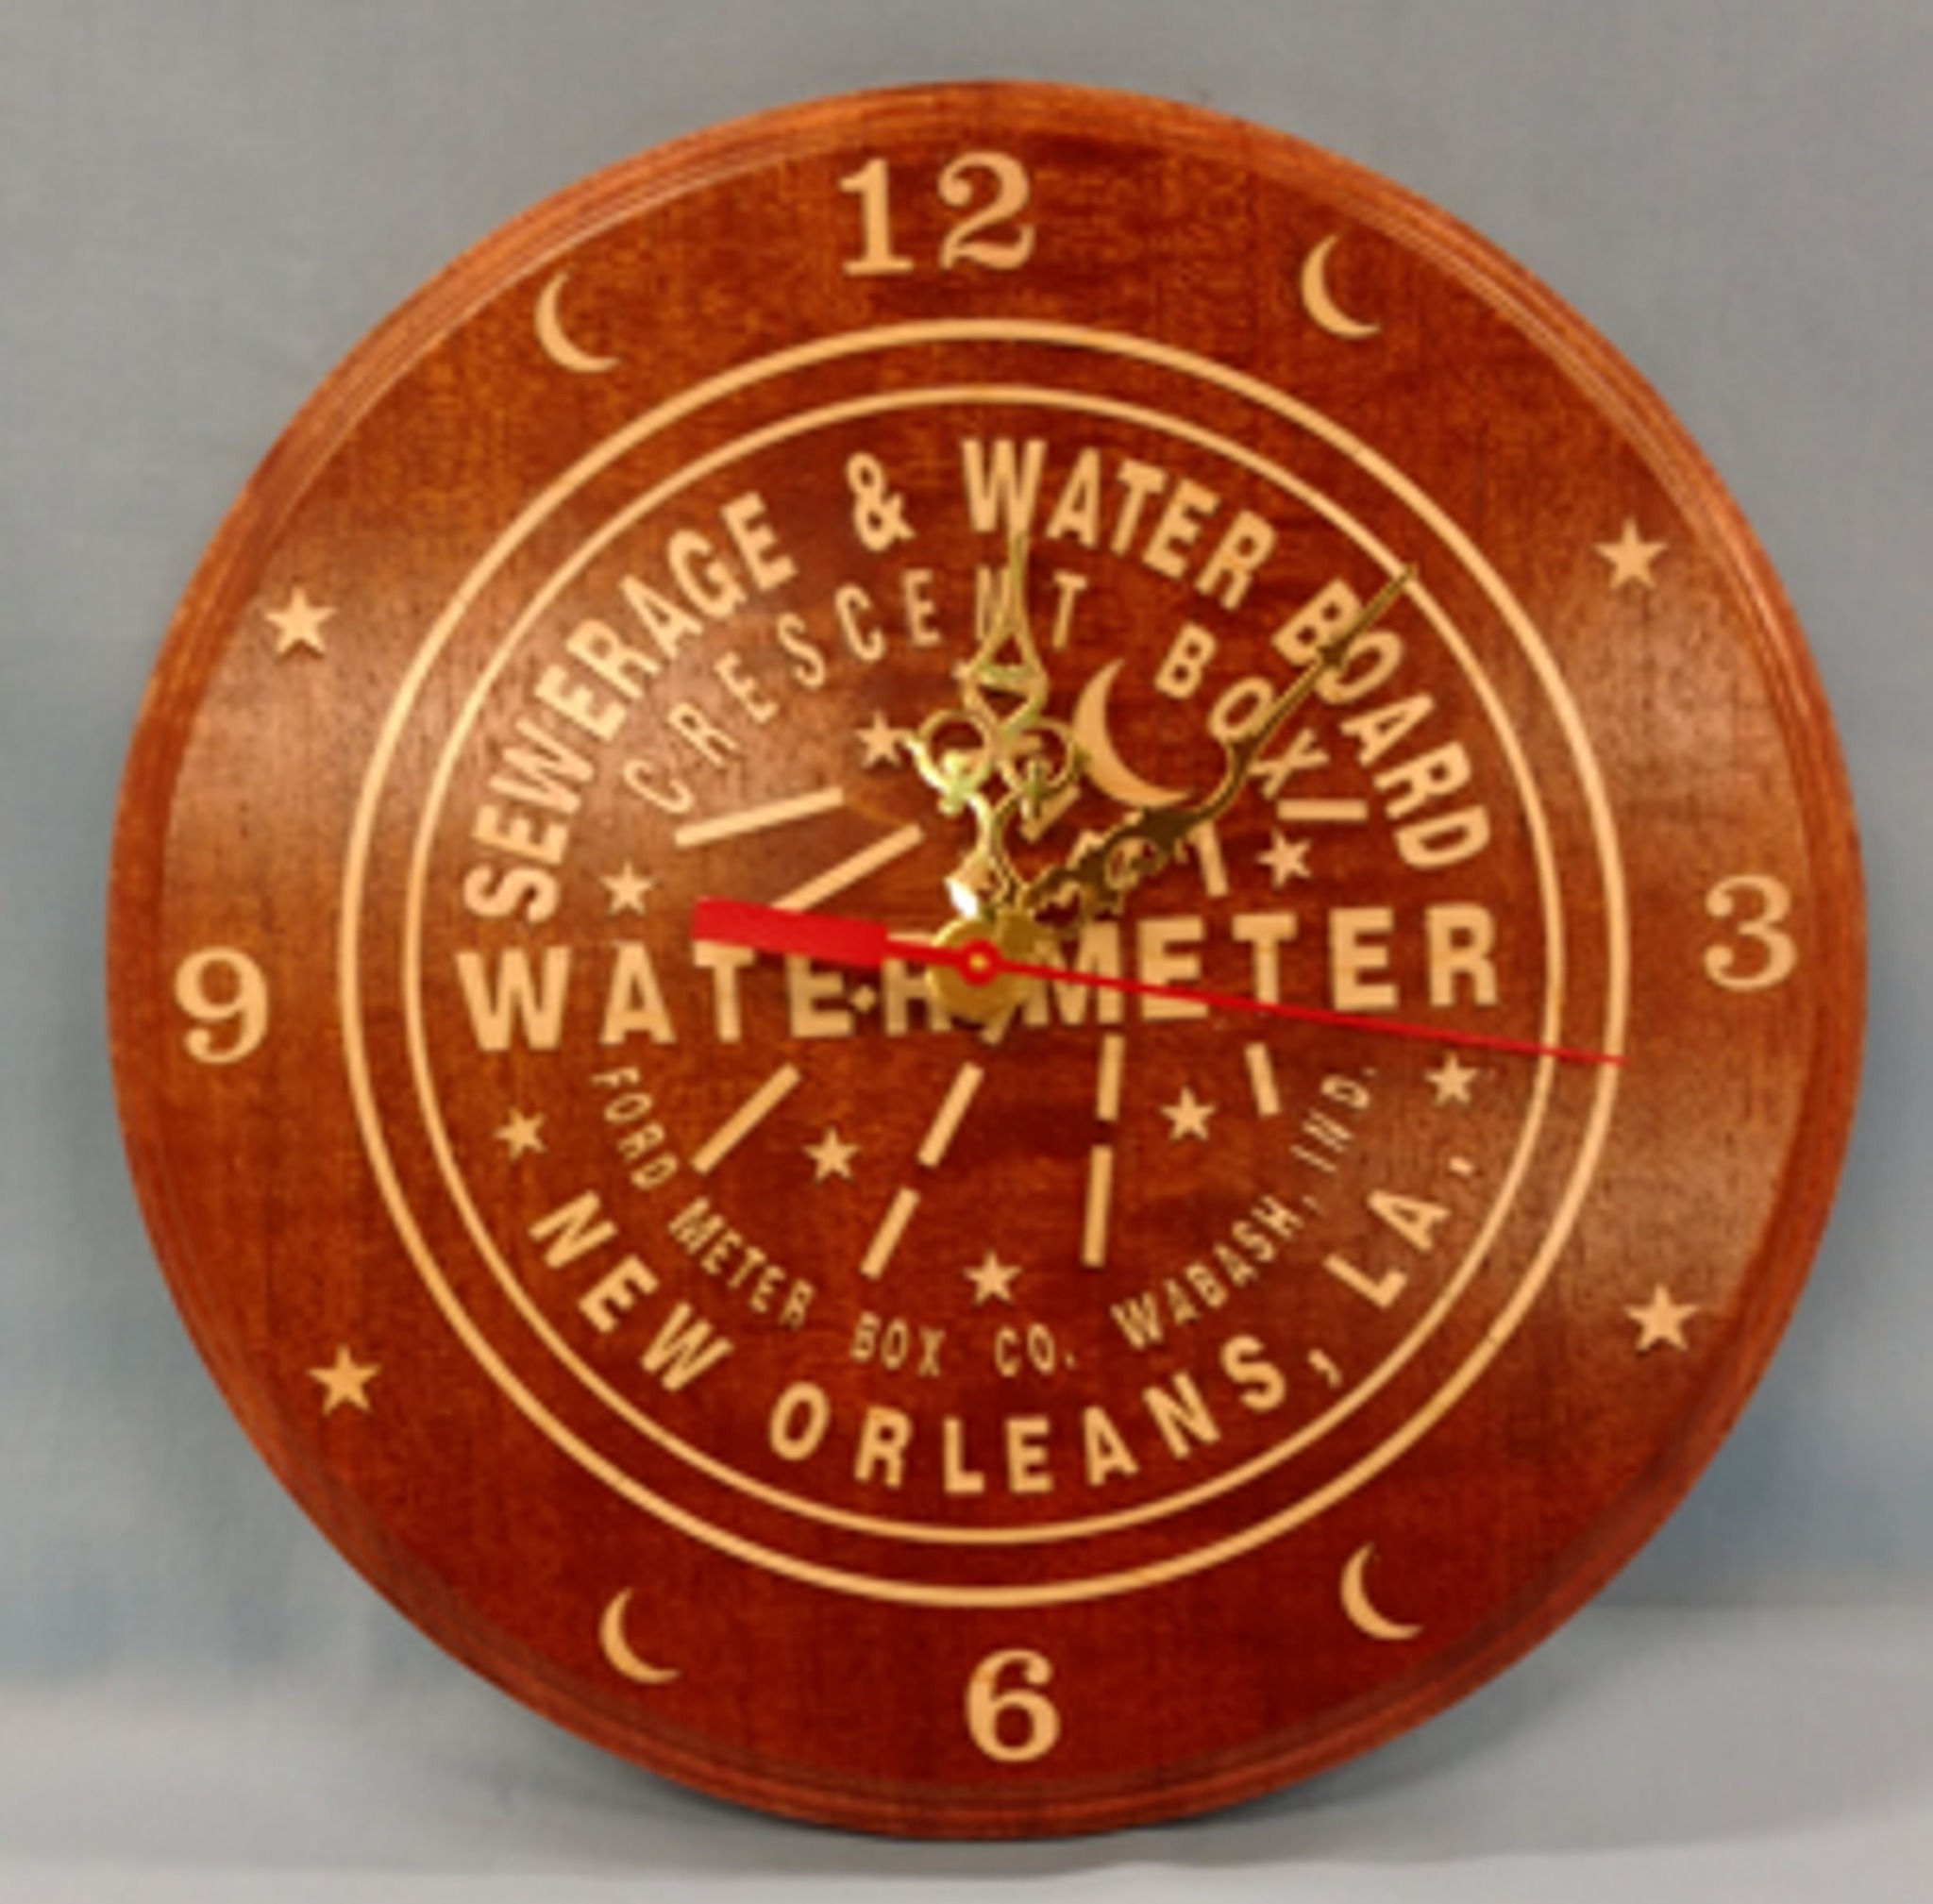 "Water meter clocks have been quite popular. They are normally 10"" round and laser engraved. Optionally, they may be fully inlaid or have inlaid numbers and symbols."